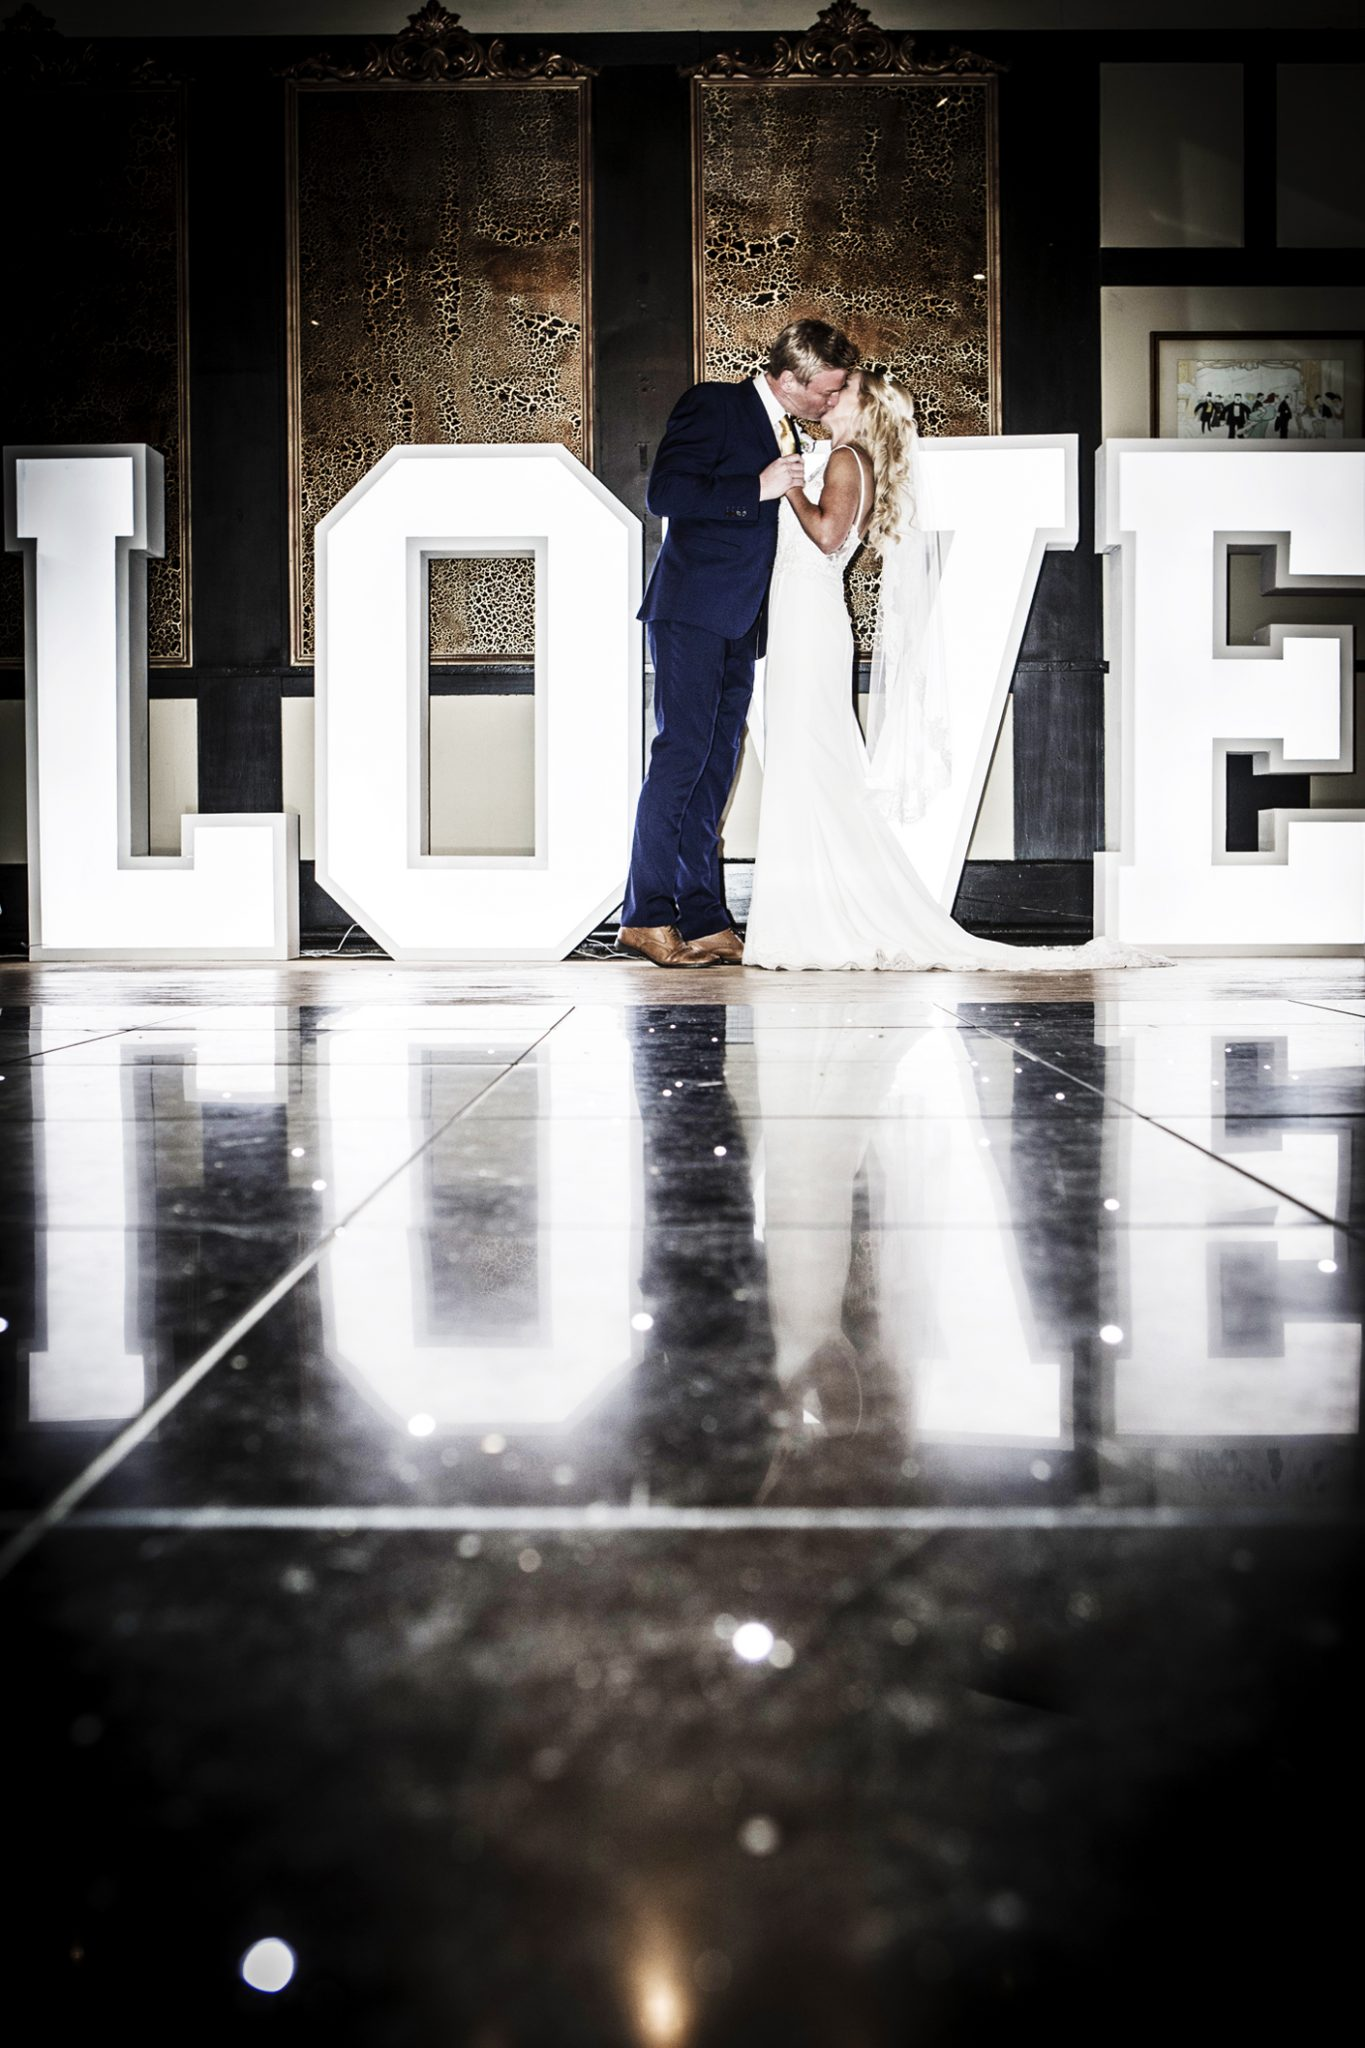 wedding-photography-at-The-Belle-Epoque-Hotel-in-Knutsford-Cheshire-